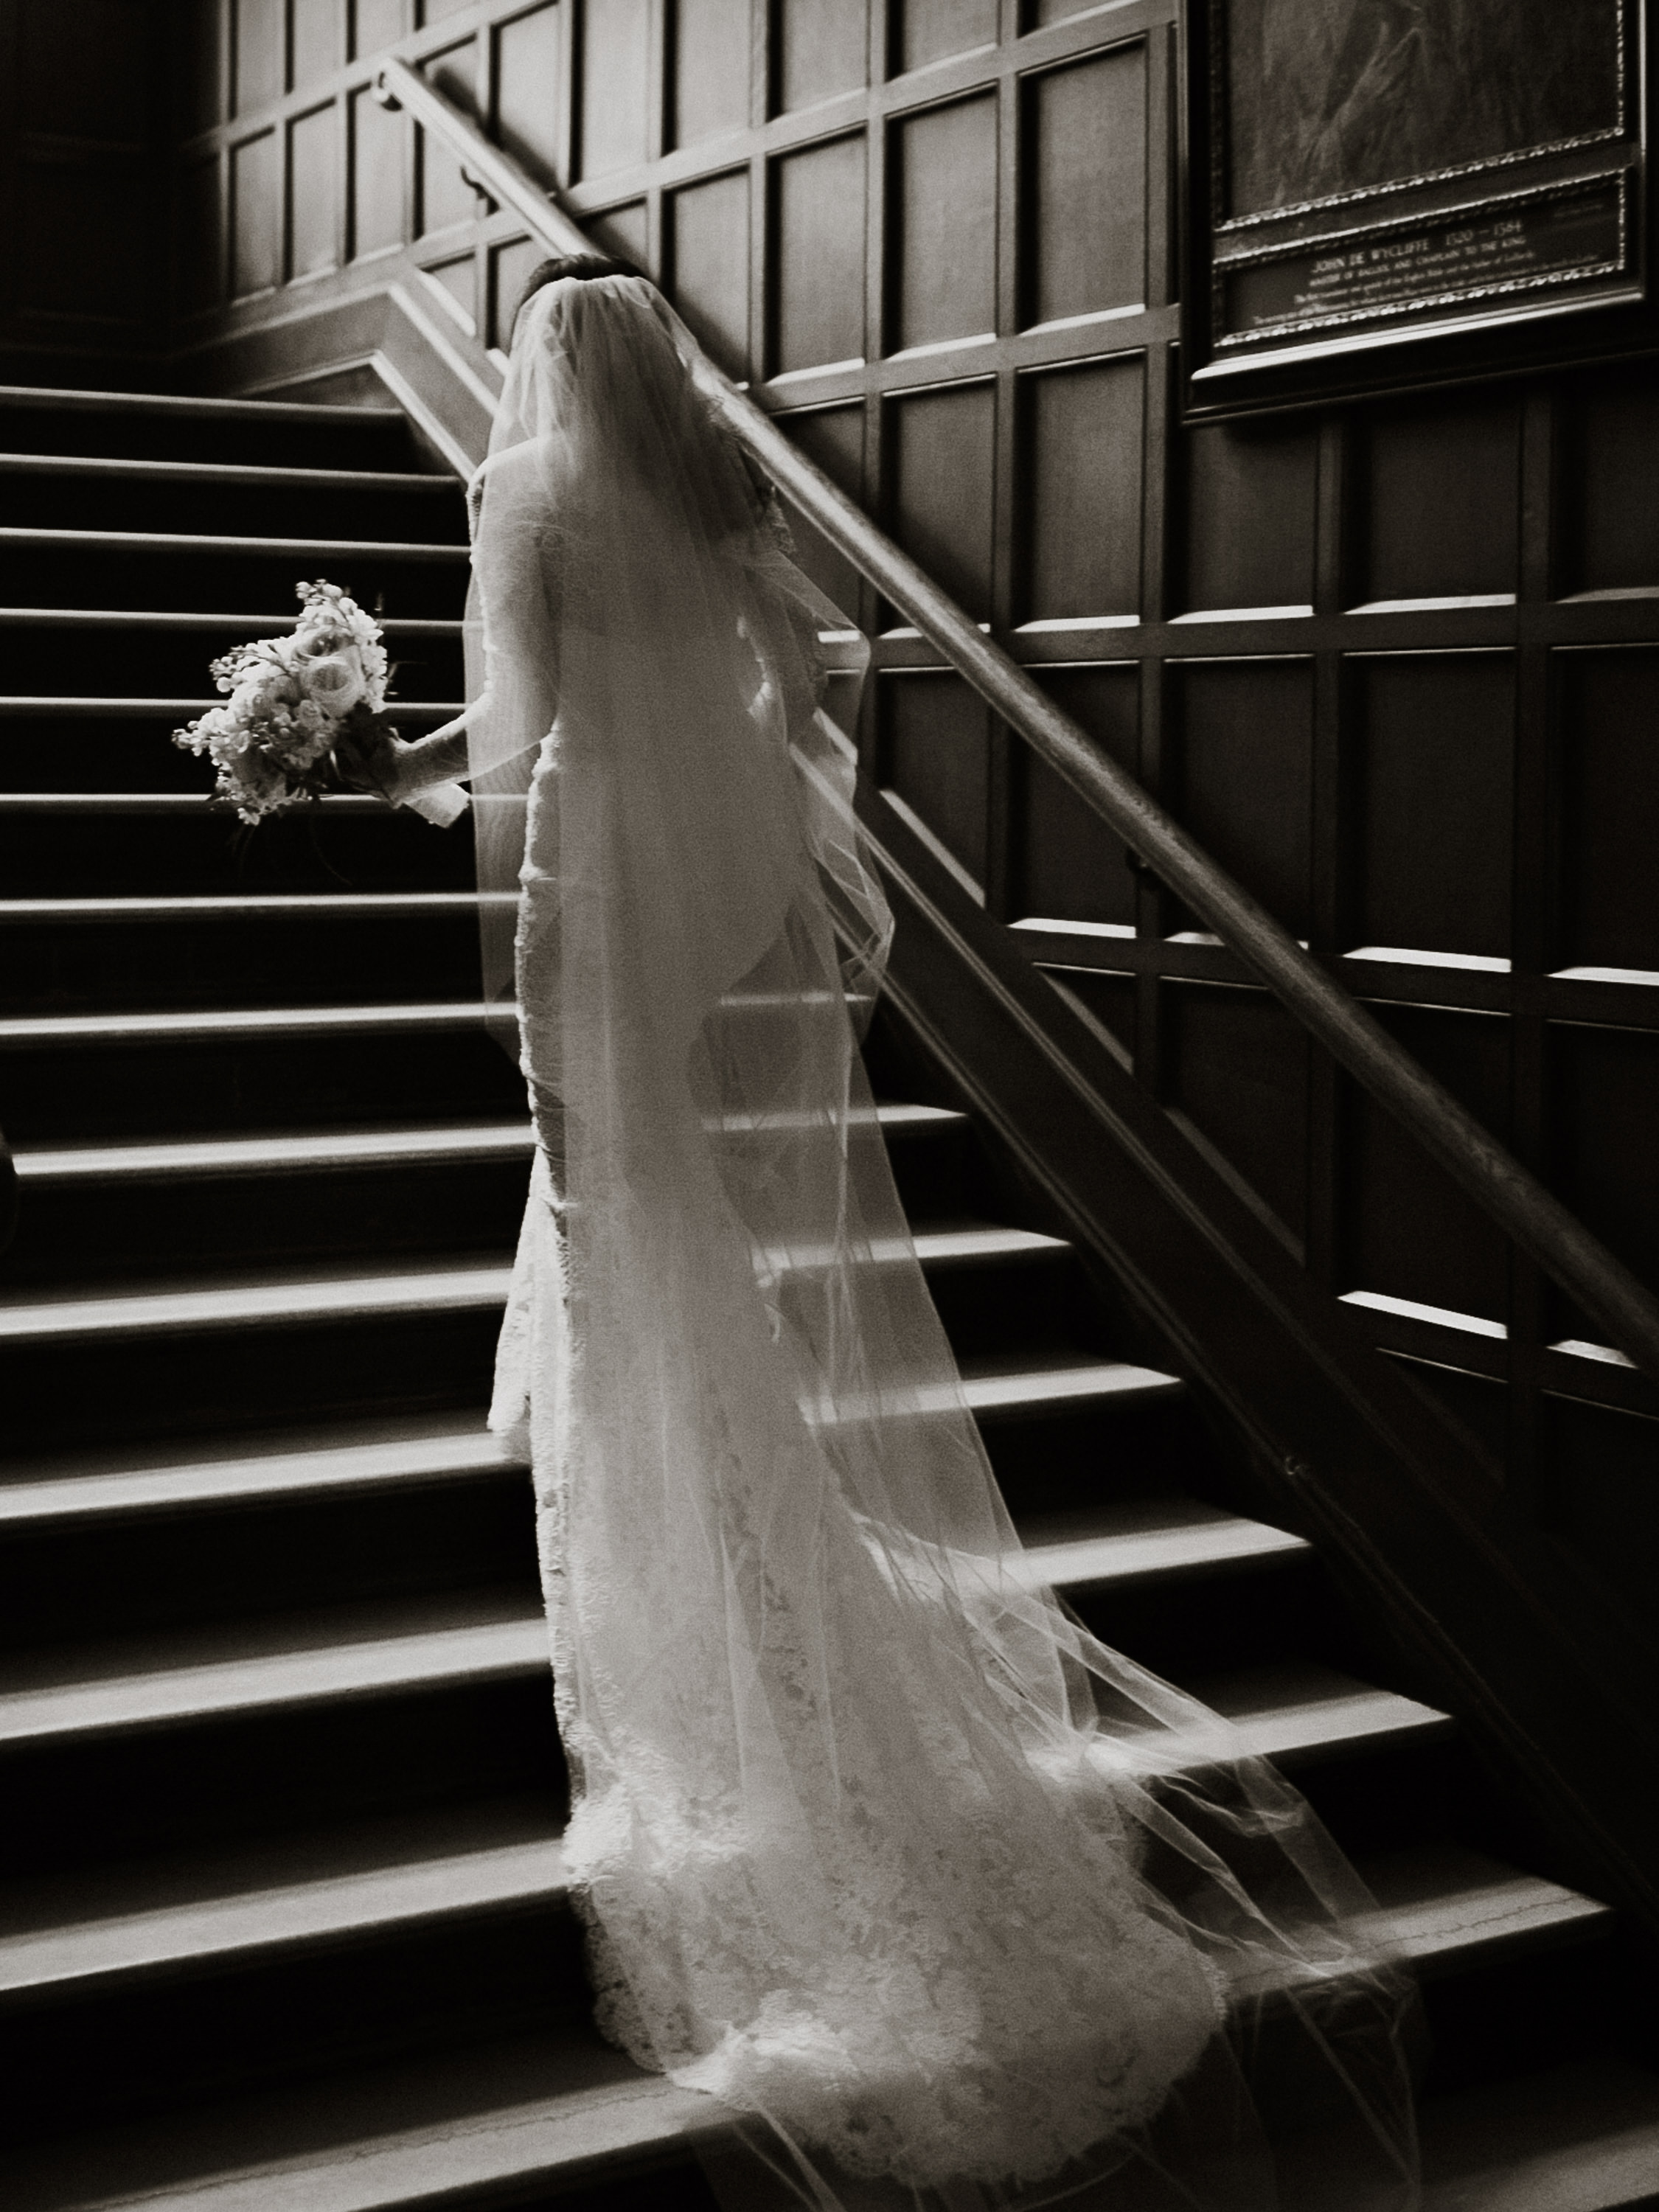 Bride ascending staircase - photo by Joel and Justyna